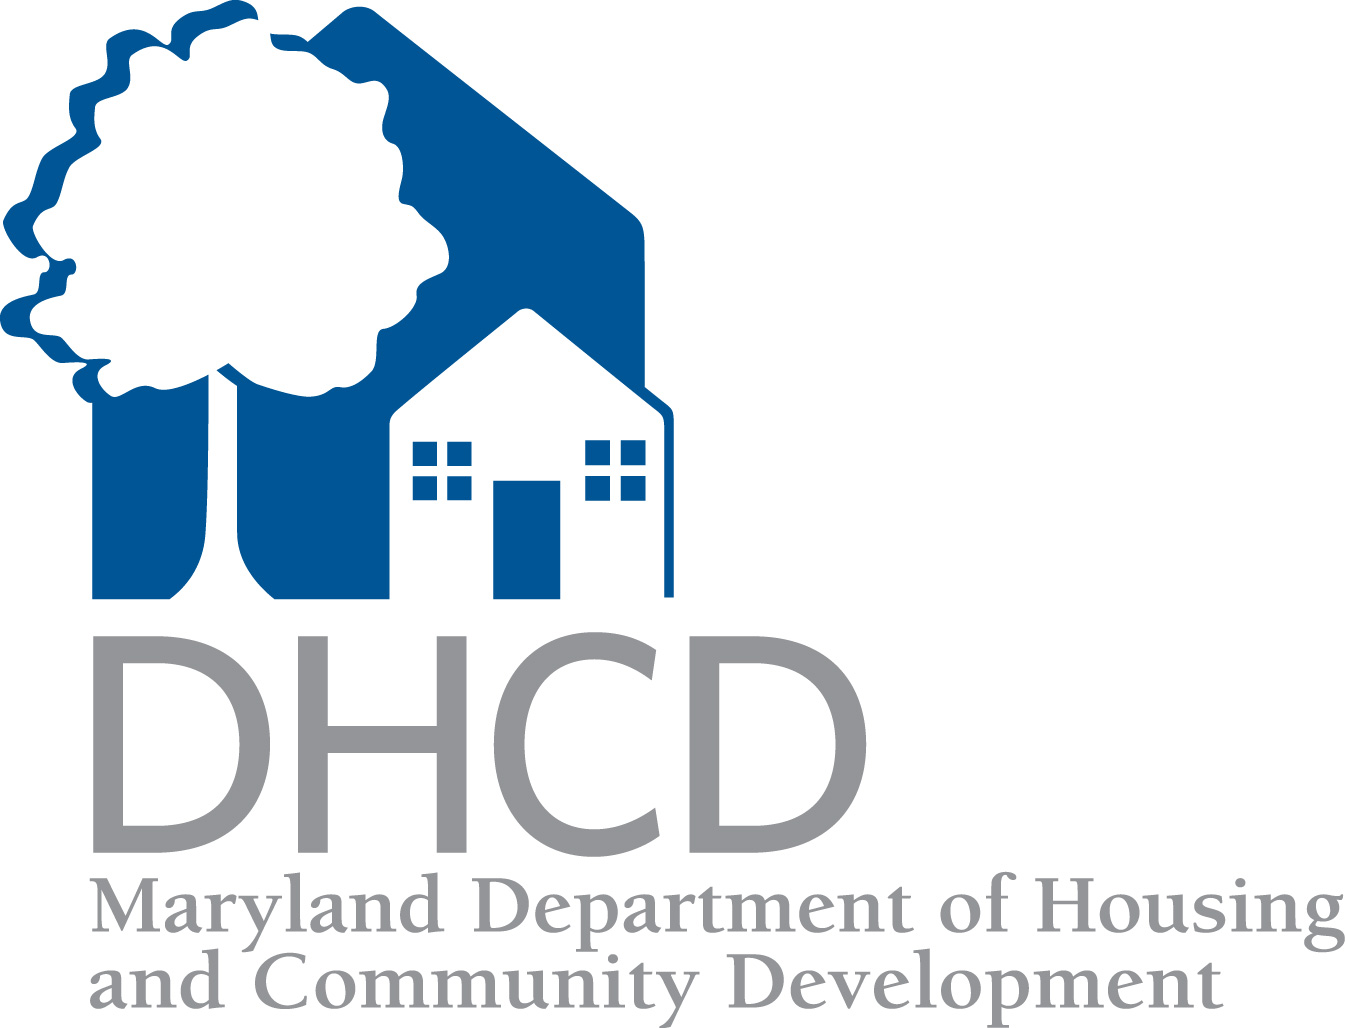 dhcd_md_energy_efficiency.jpg